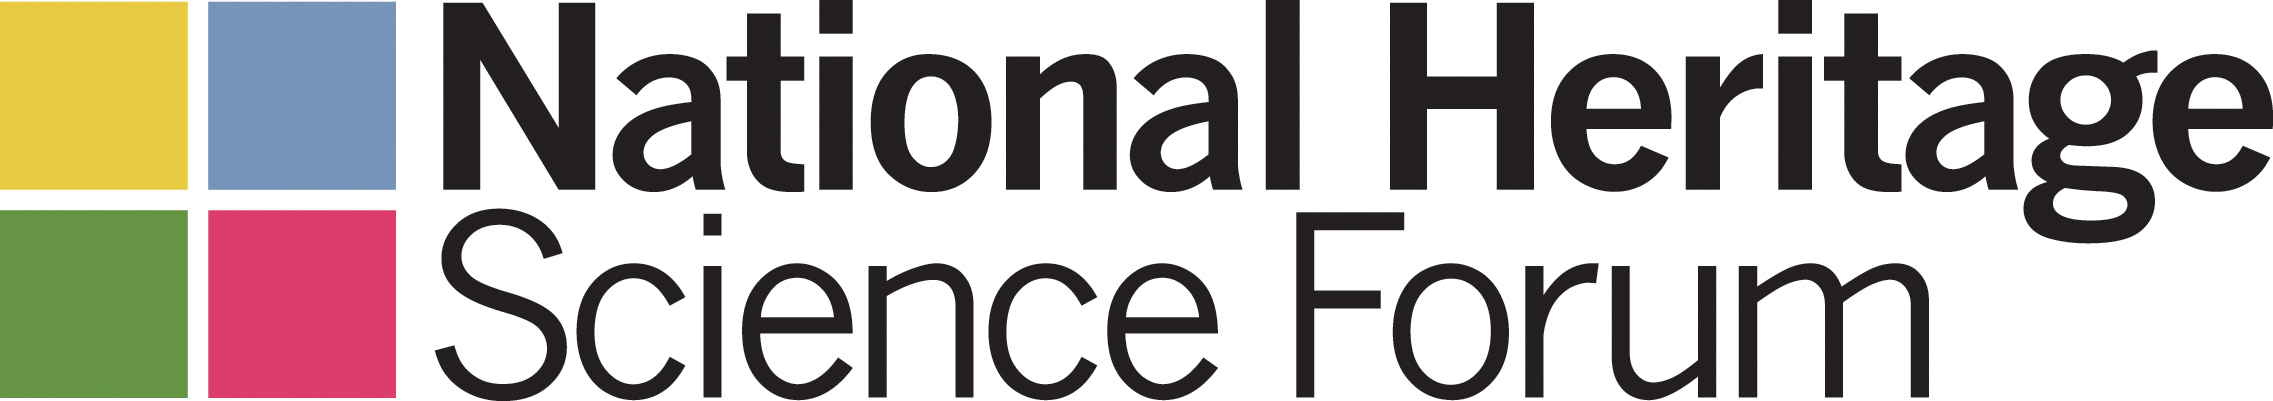 National Heritage Science Forum logo